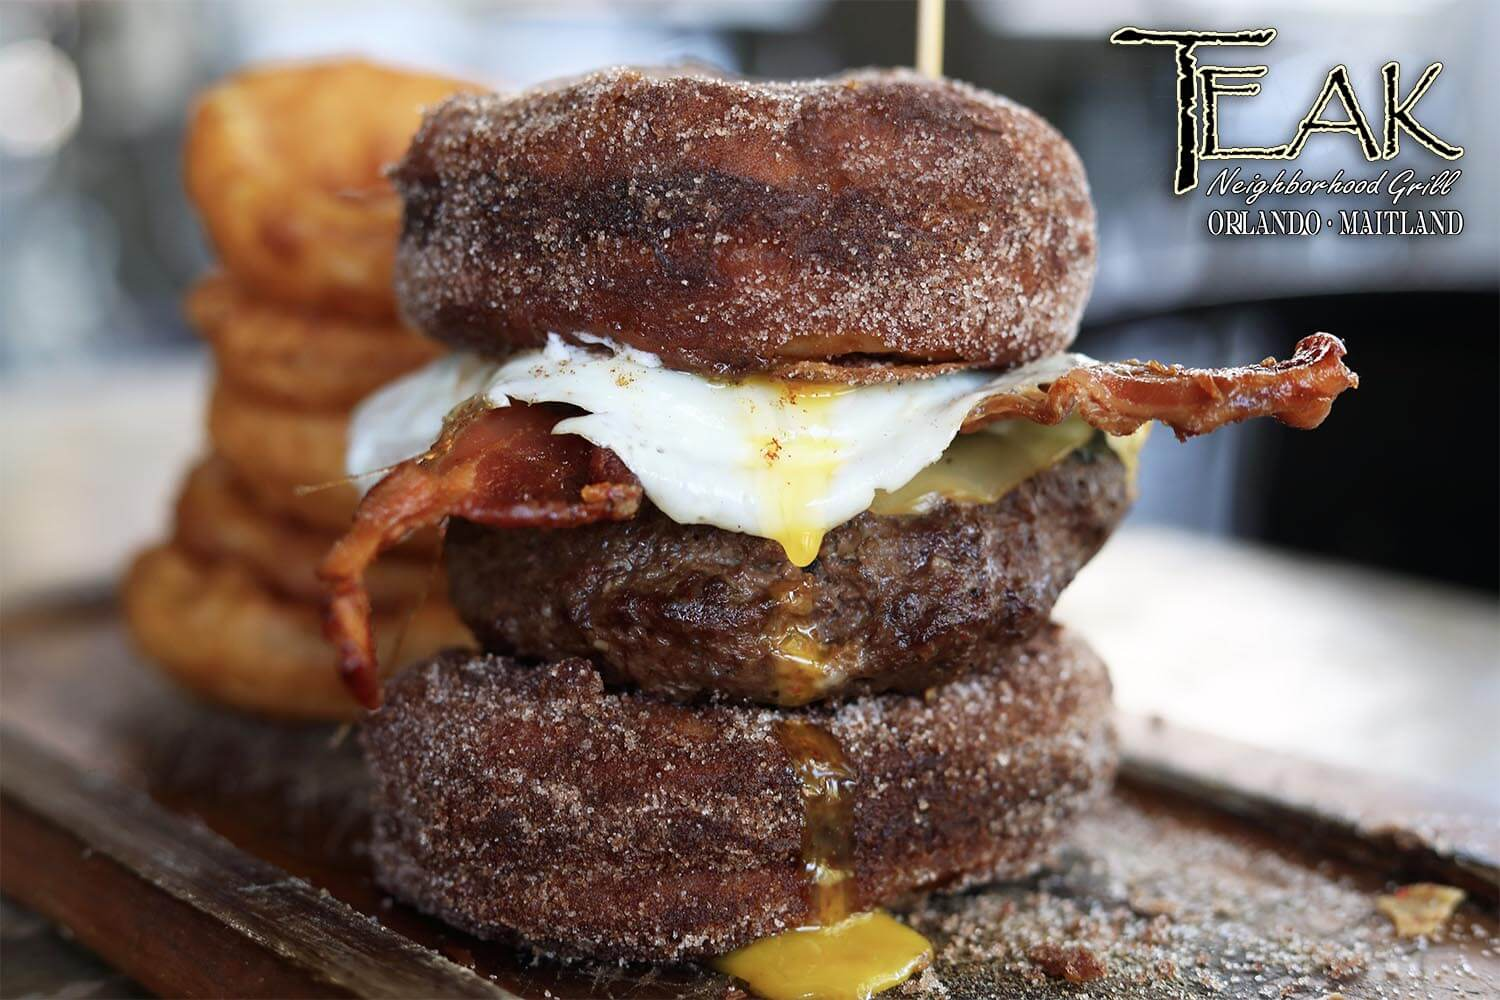 Cronie Burger french doughnuts with half pound angus burger topped with maple-pepper bacon, smoked gouda cheese on an over medium egg